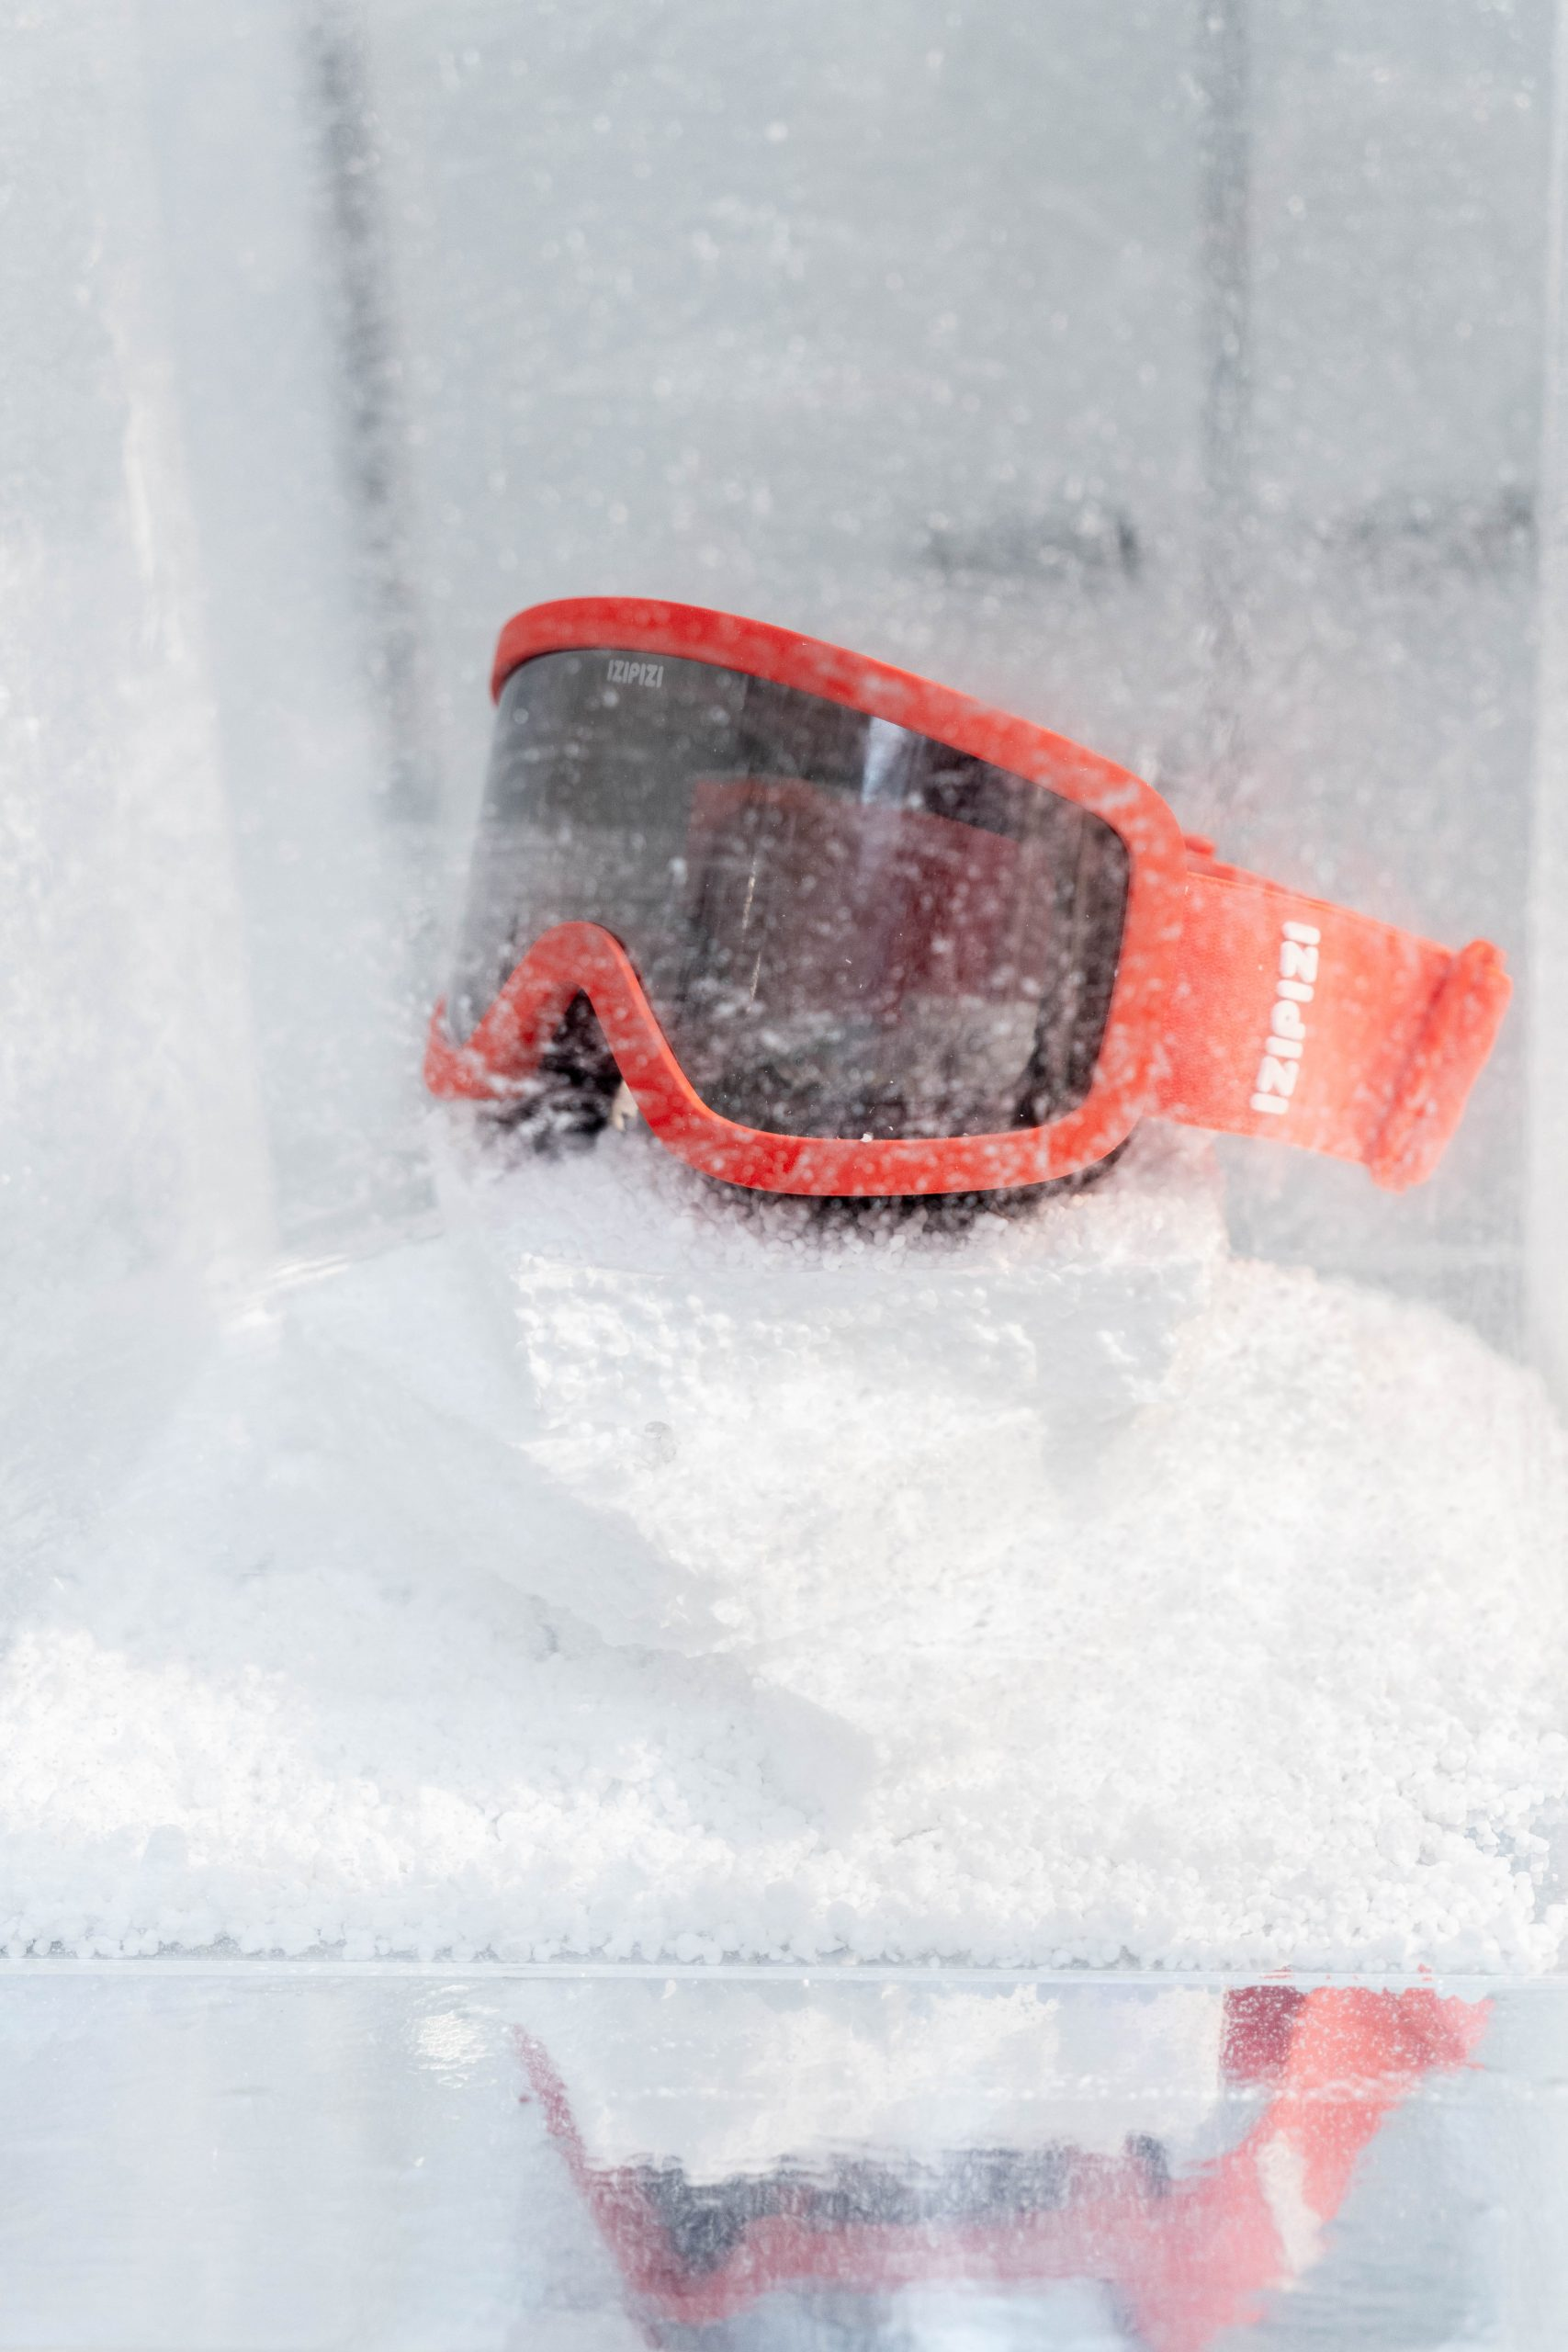 Nightingale HYPE-Ö-THERMY ski goggles